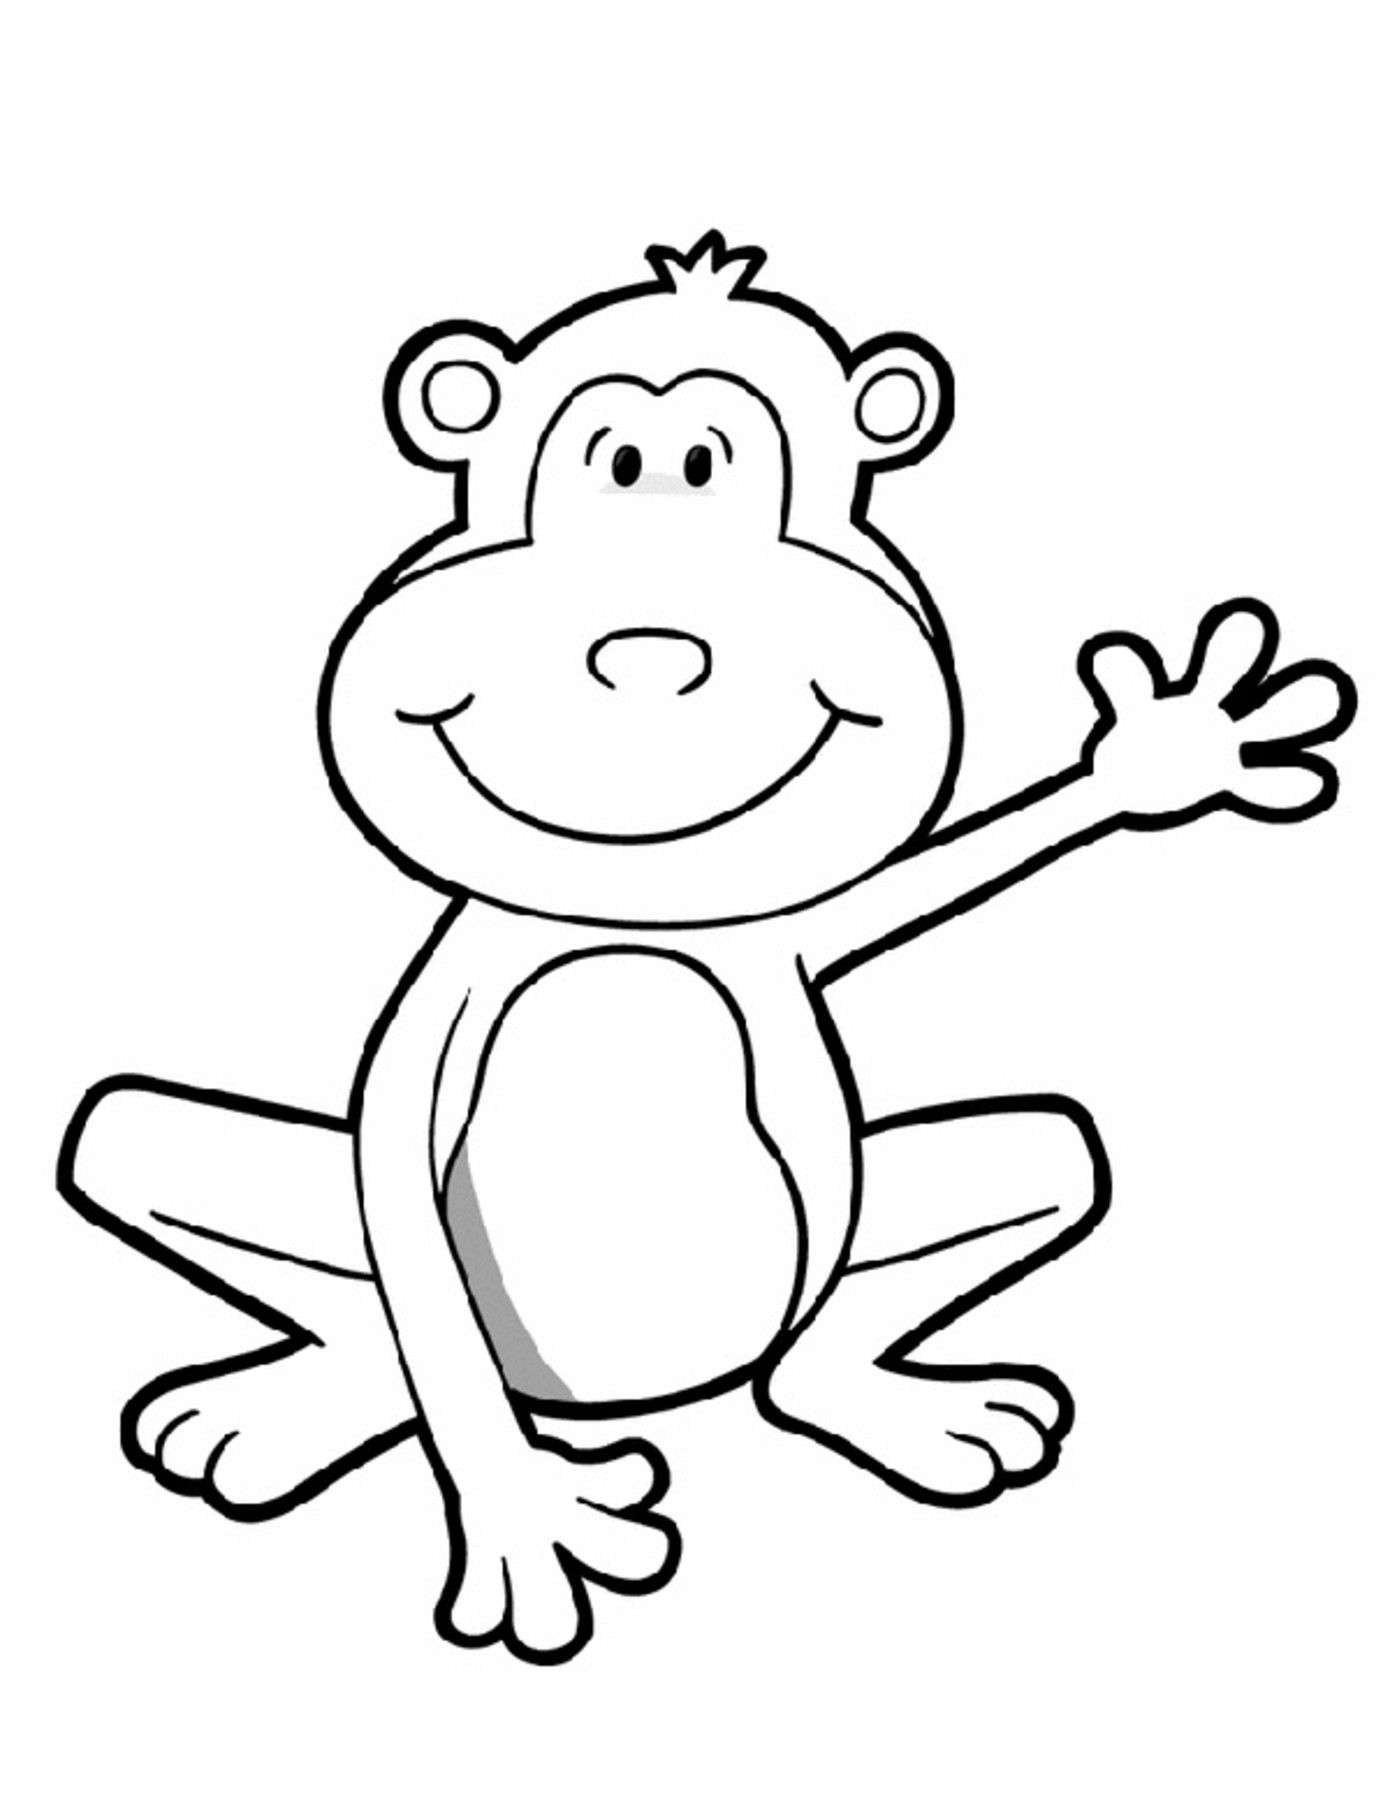 Online coloring room - Free Happy Monkey Coloring Page To Download Or Print Including Many Other Related Monkey Coloring Page You May Like Or Else Do Online Coloring Directly